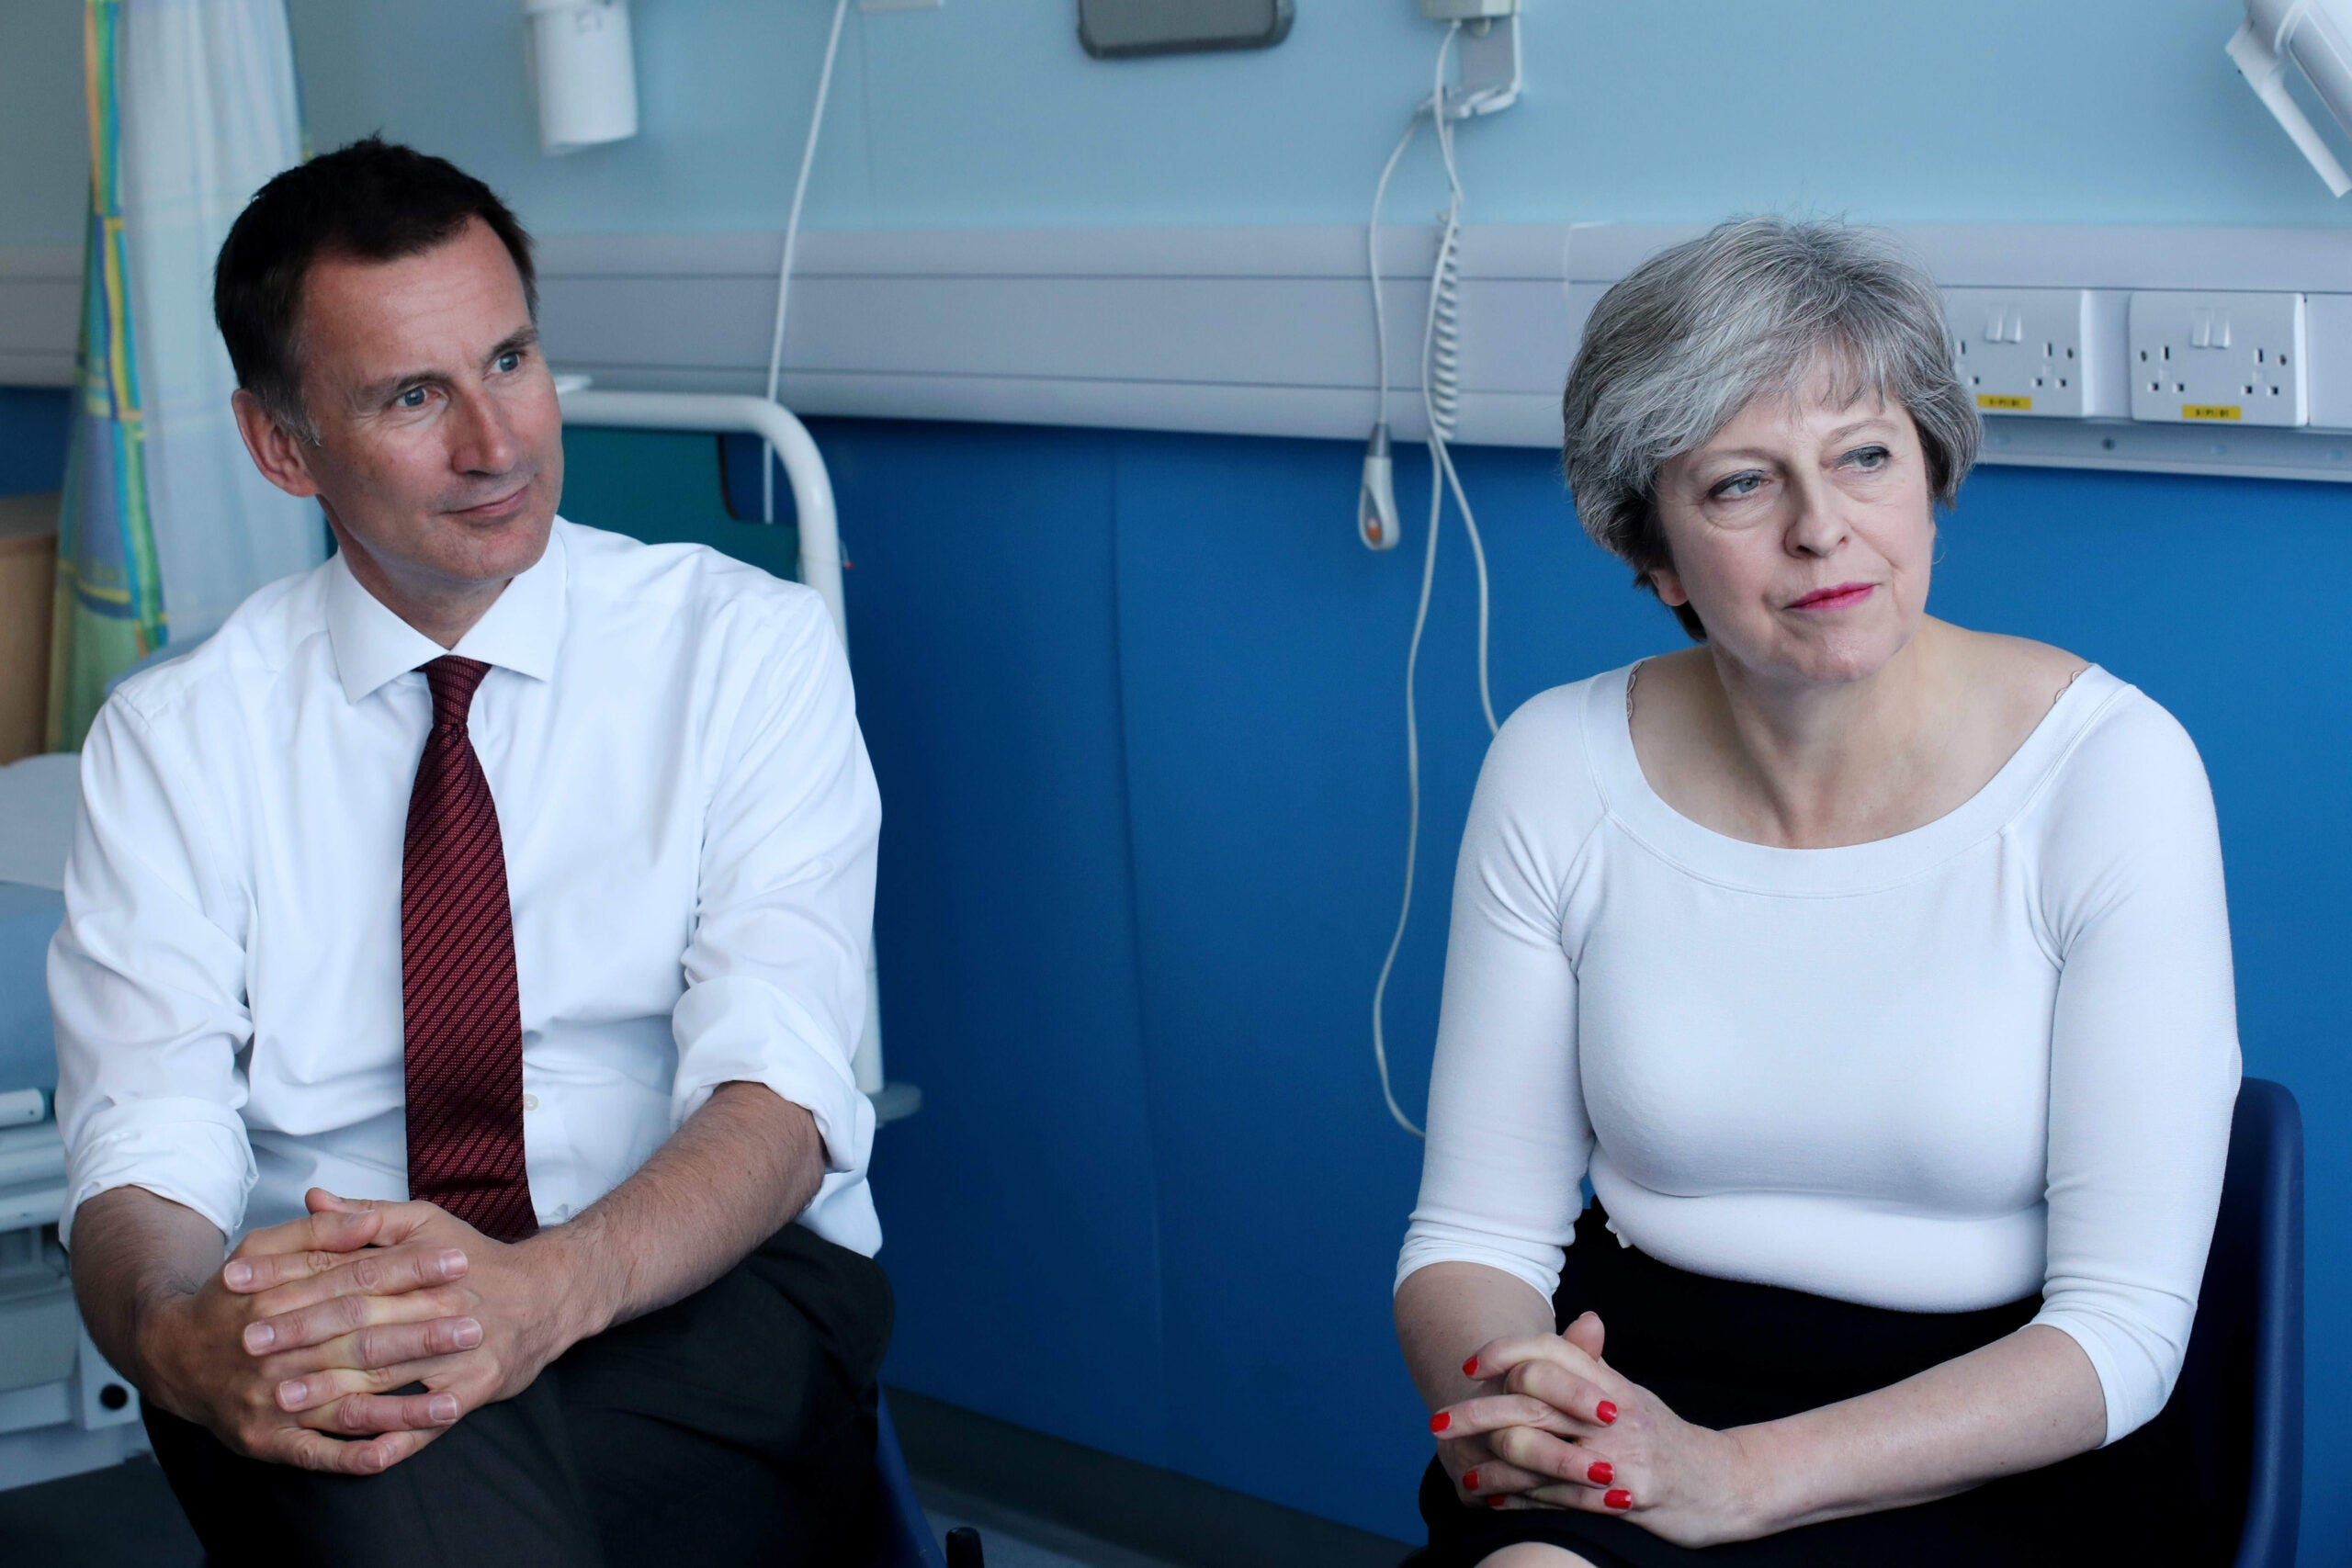 The Tories' policies made an NHS crisis inevitable